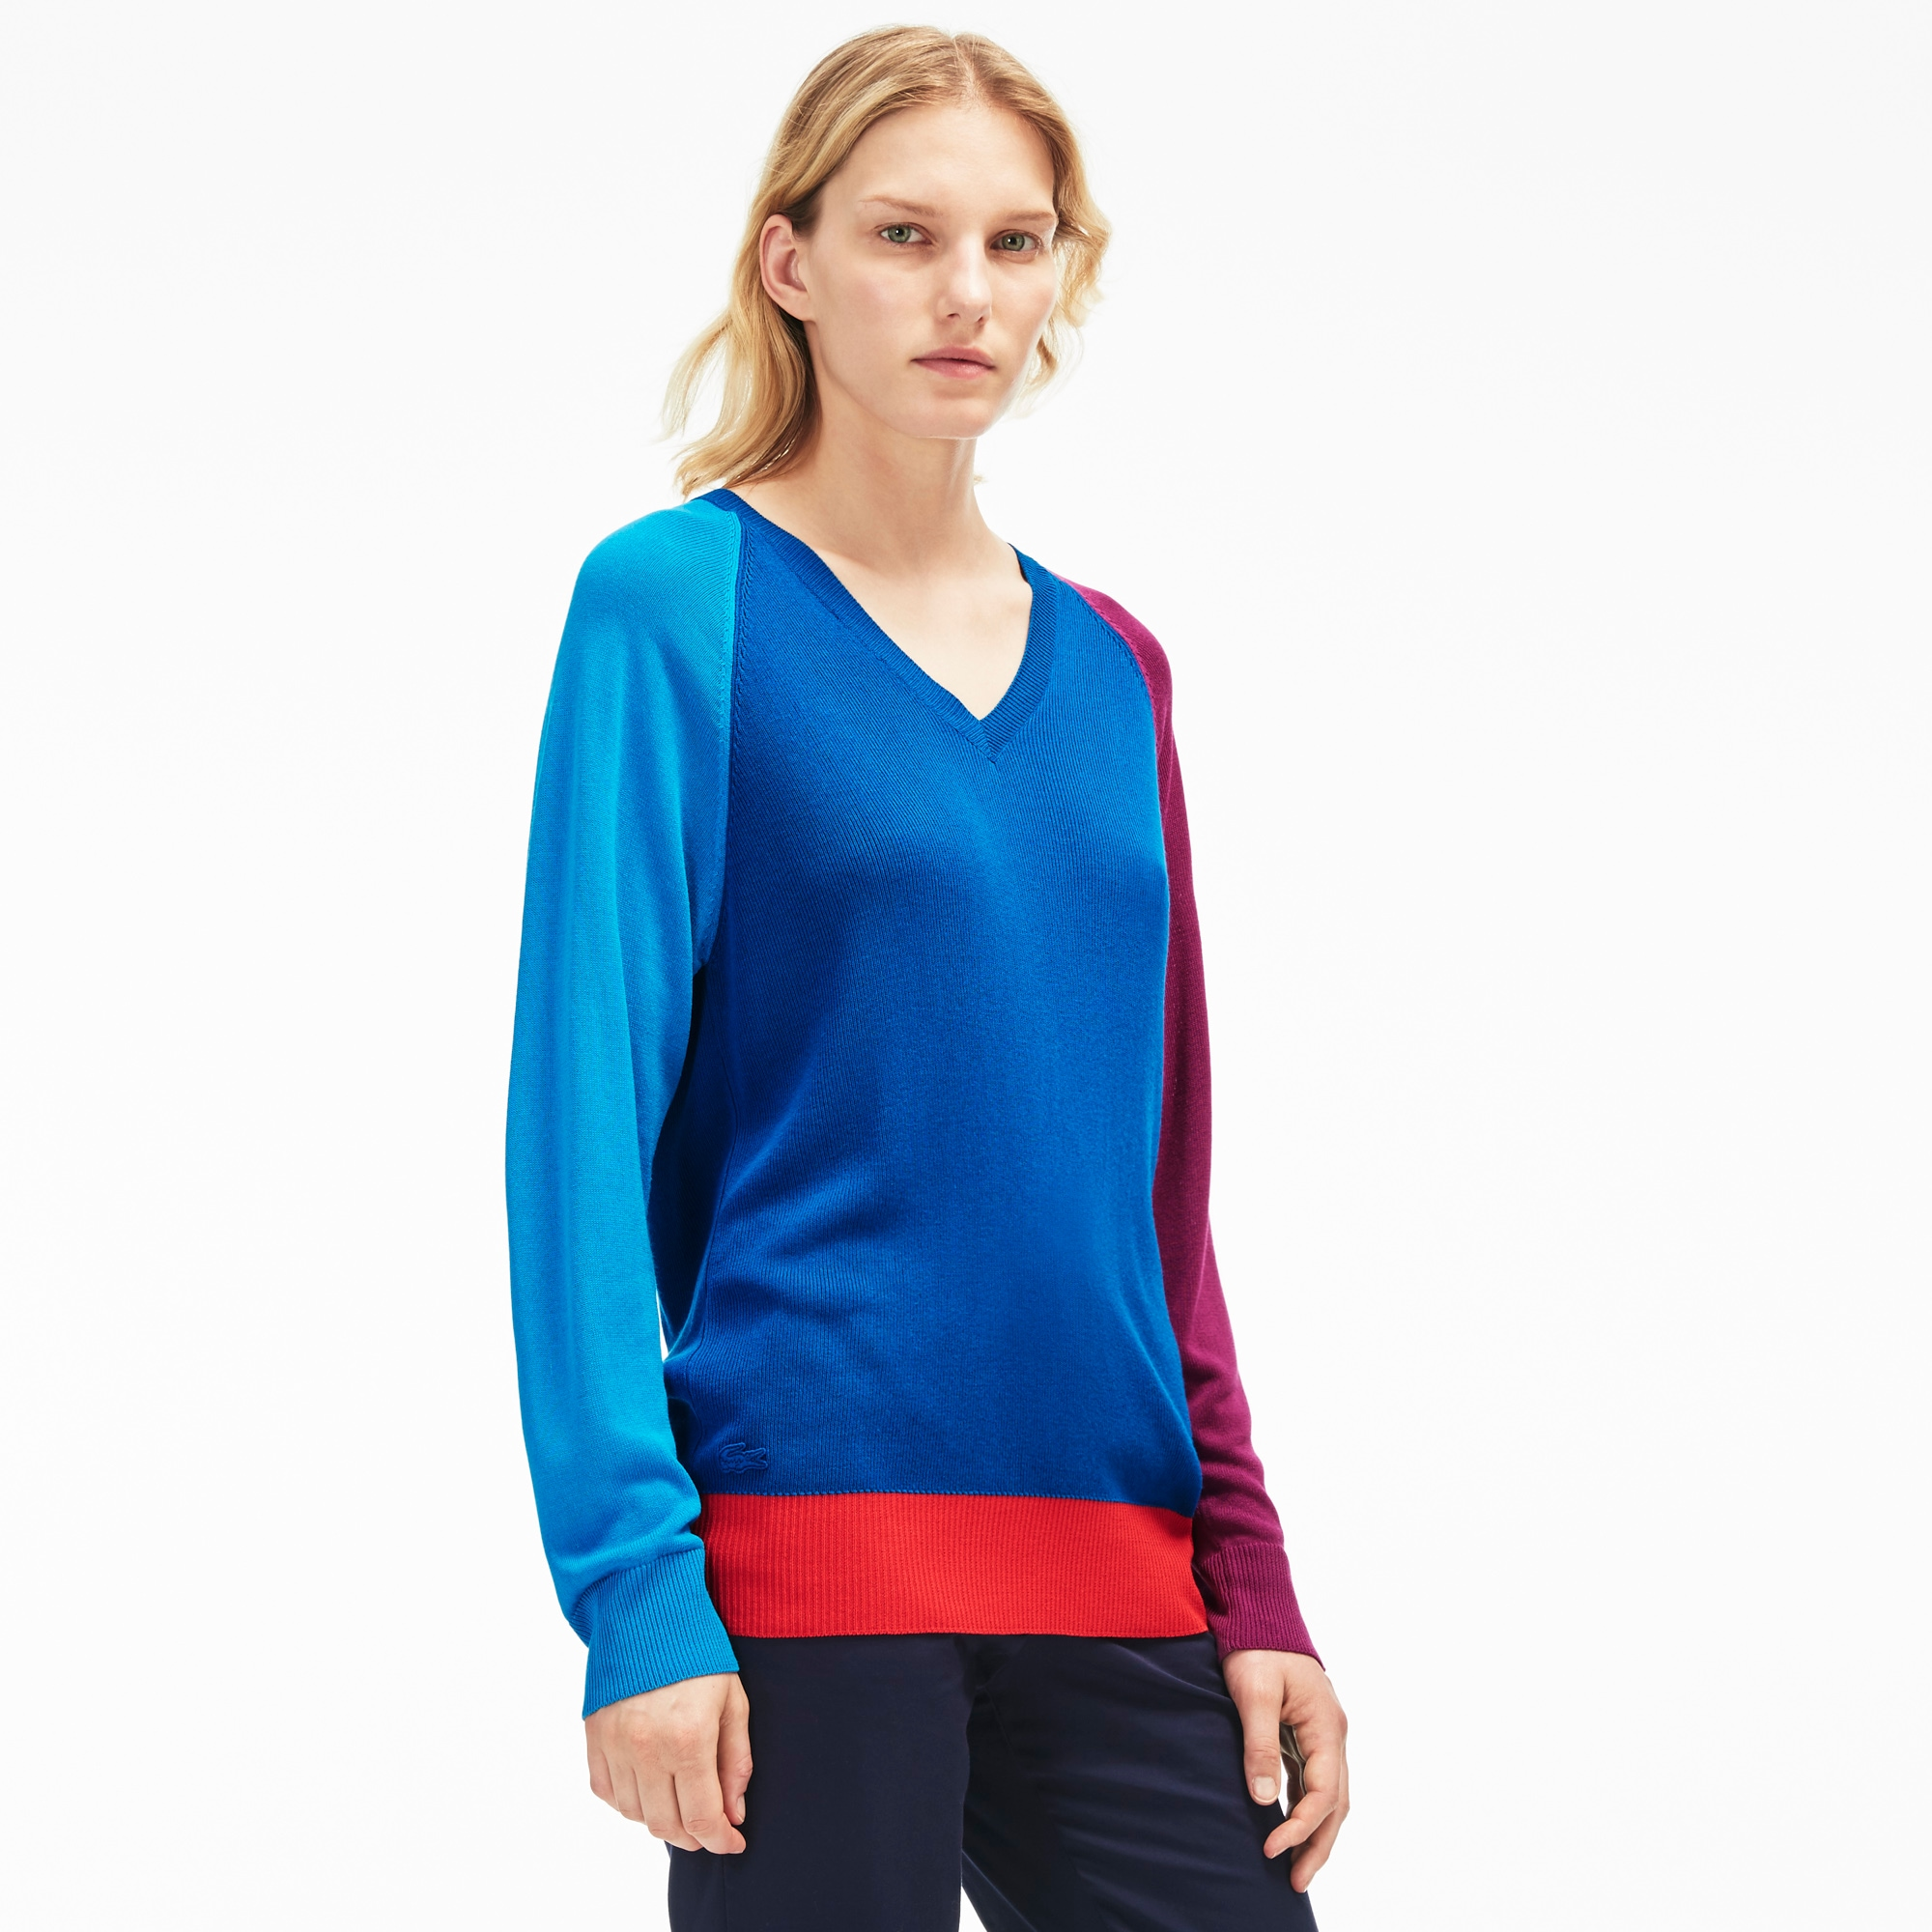 Women's Colorblock Flowing V-Neck Sweater